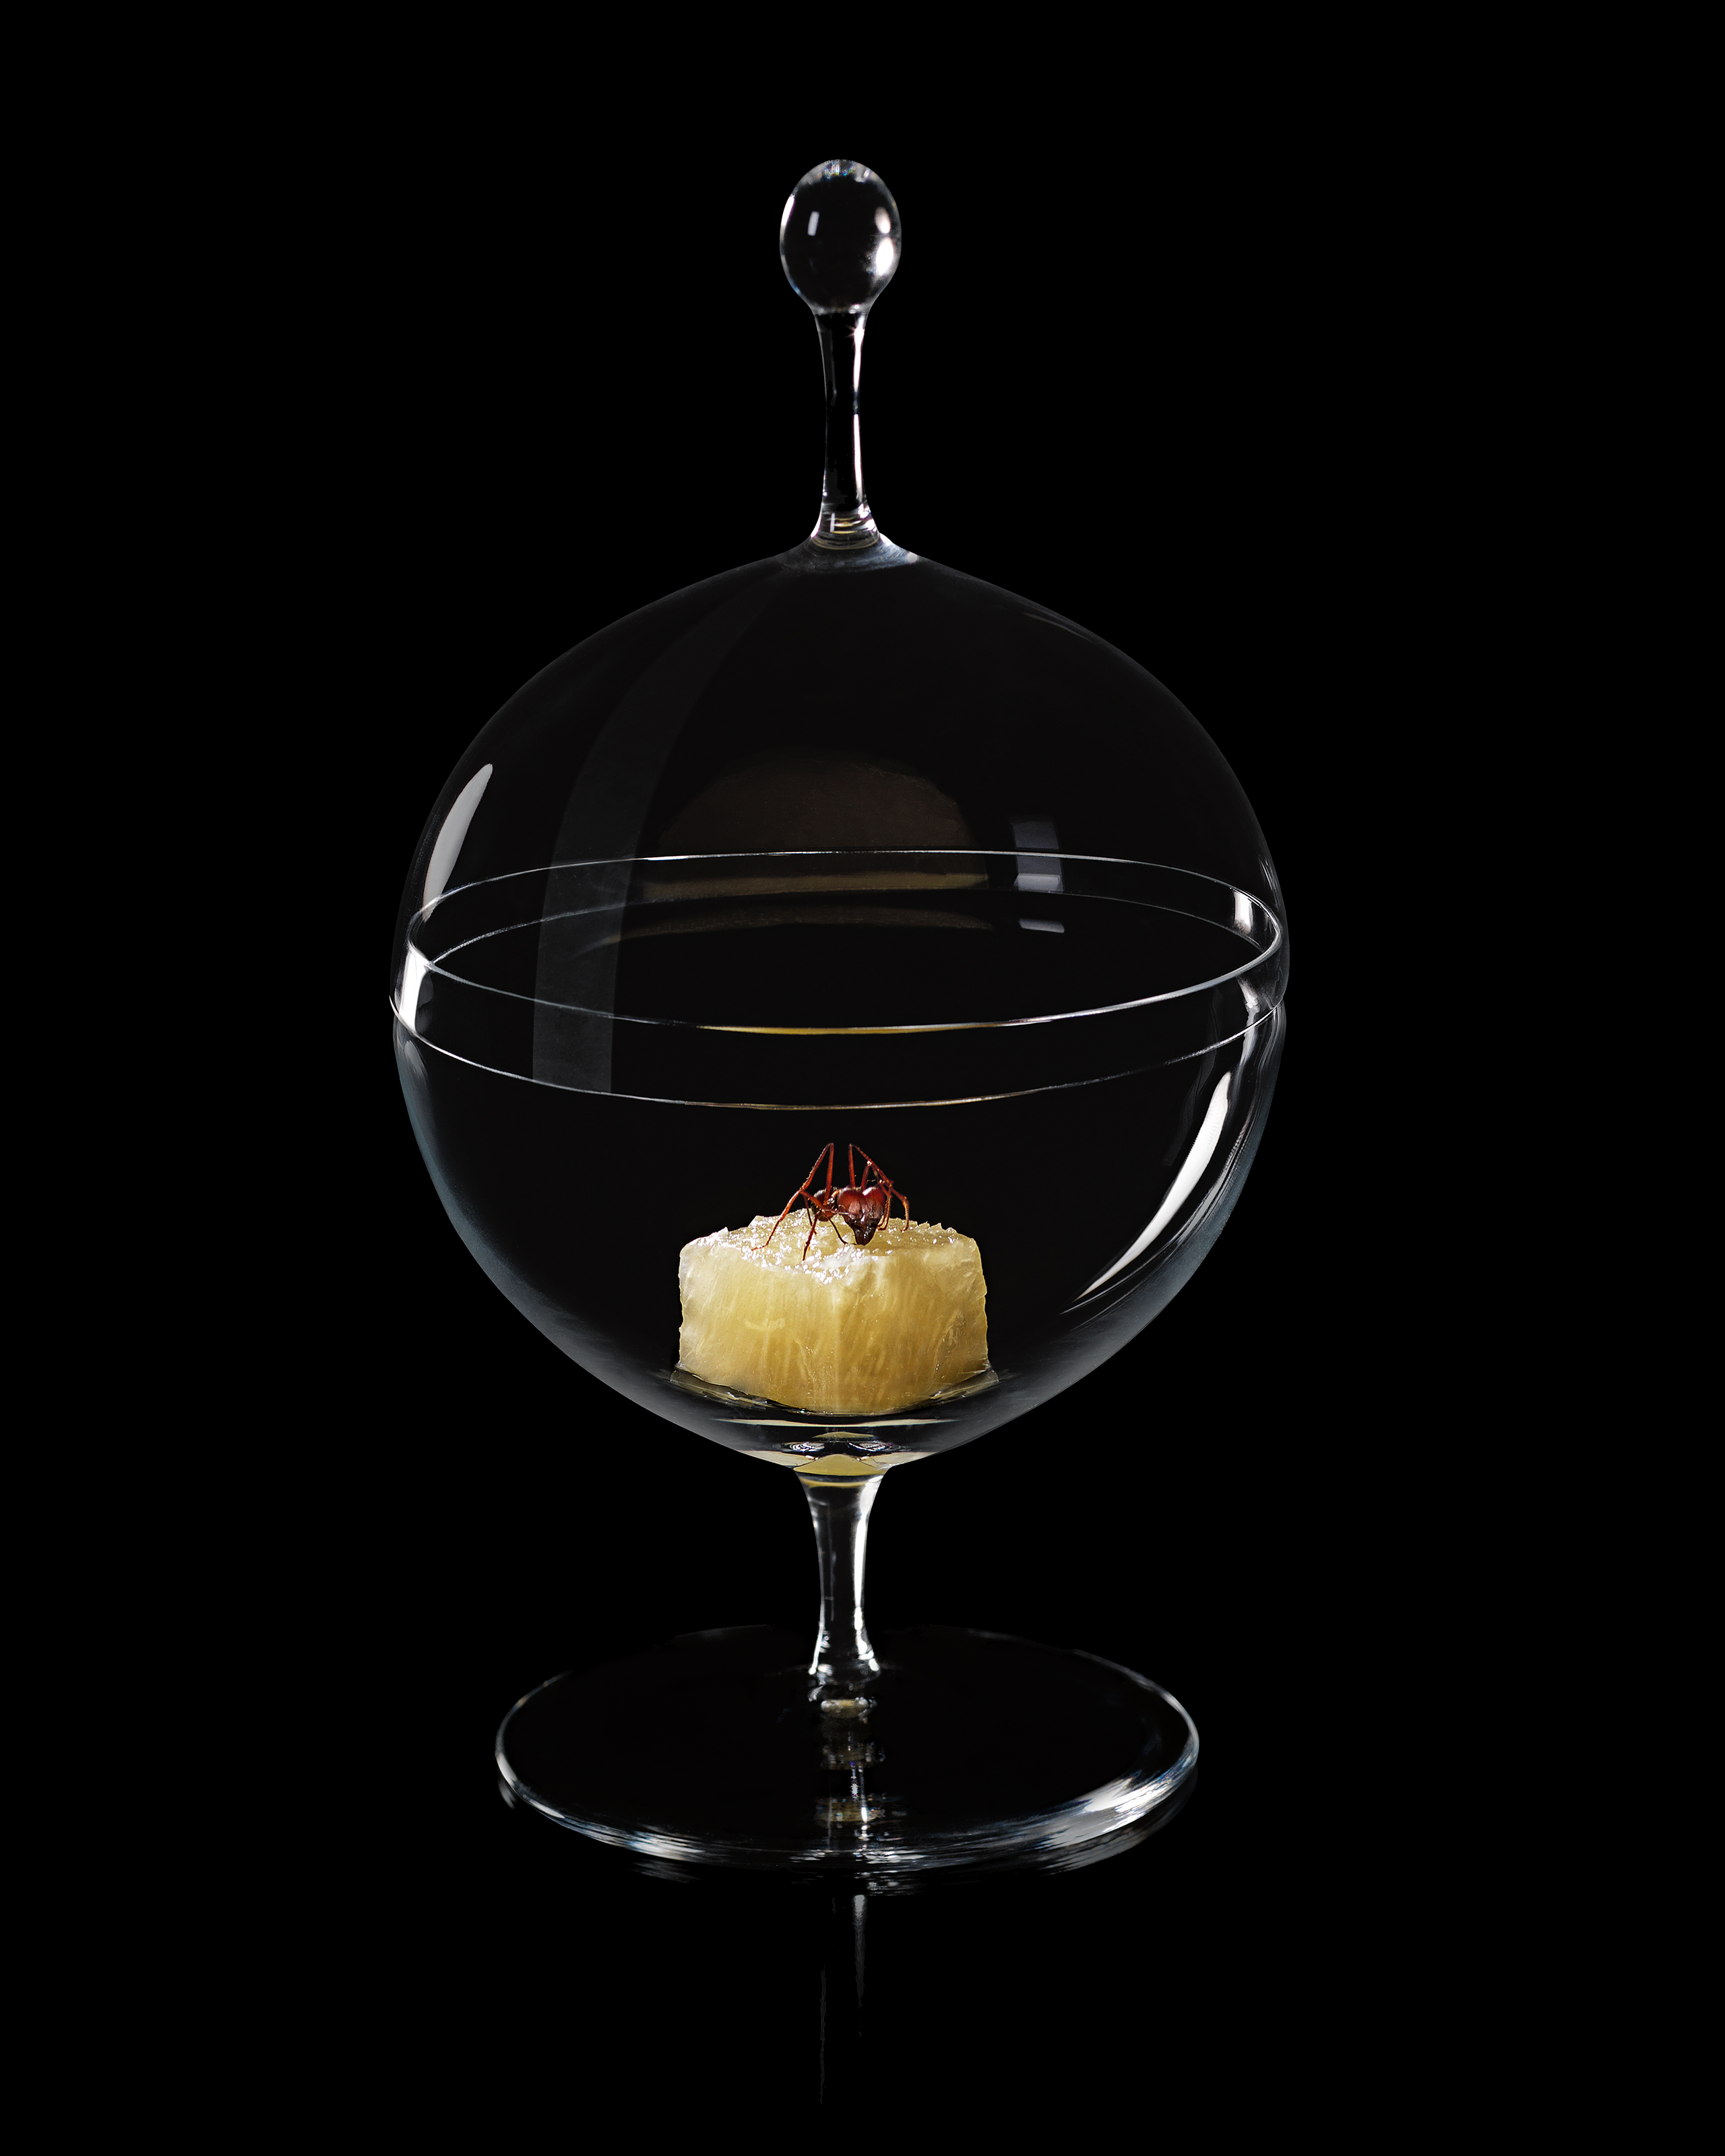 Ants and pineapple. D.O.M.: Rediscovering Brazilian Ingredients. Alex Atala. Photo © PHAIDON.